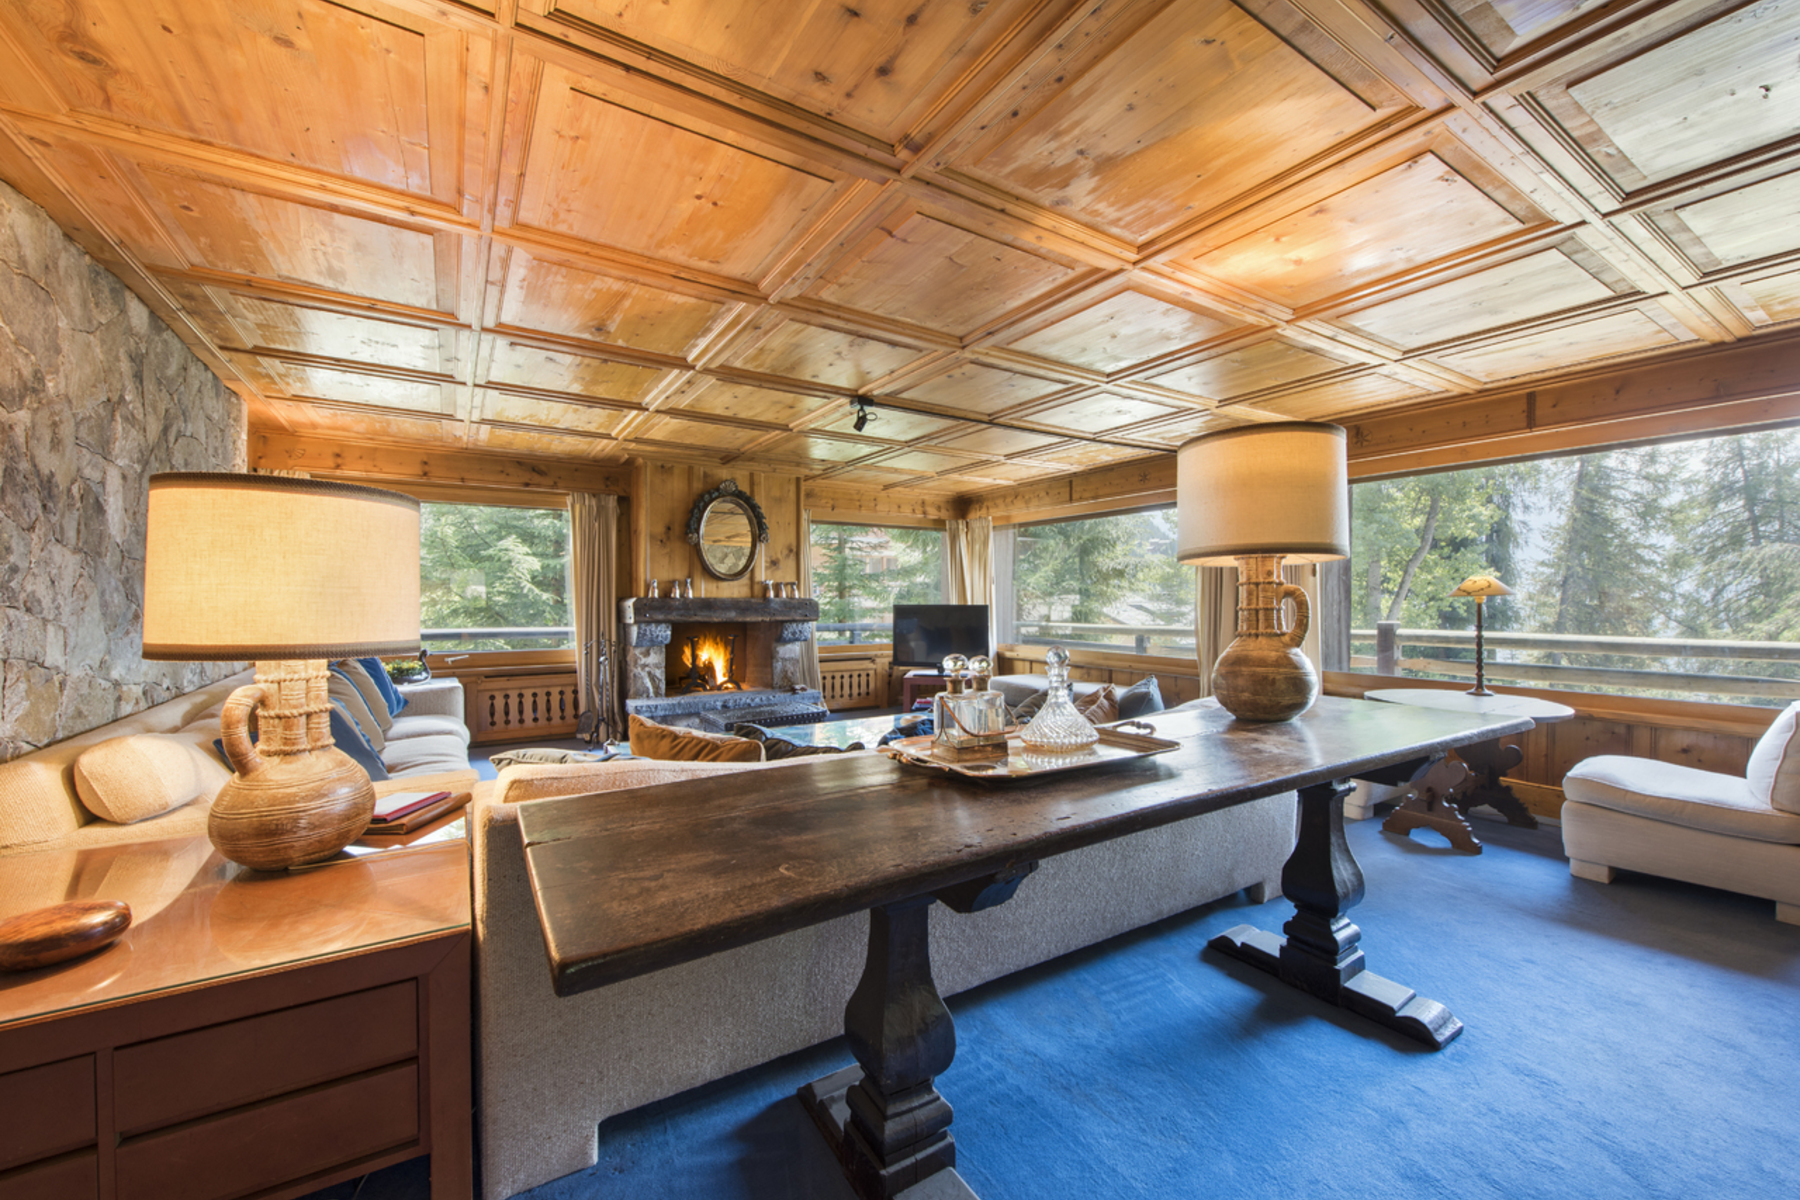 Single Family Home for Sale at Chalet PETER PAN Verbier, Valais 1936 Switzerland